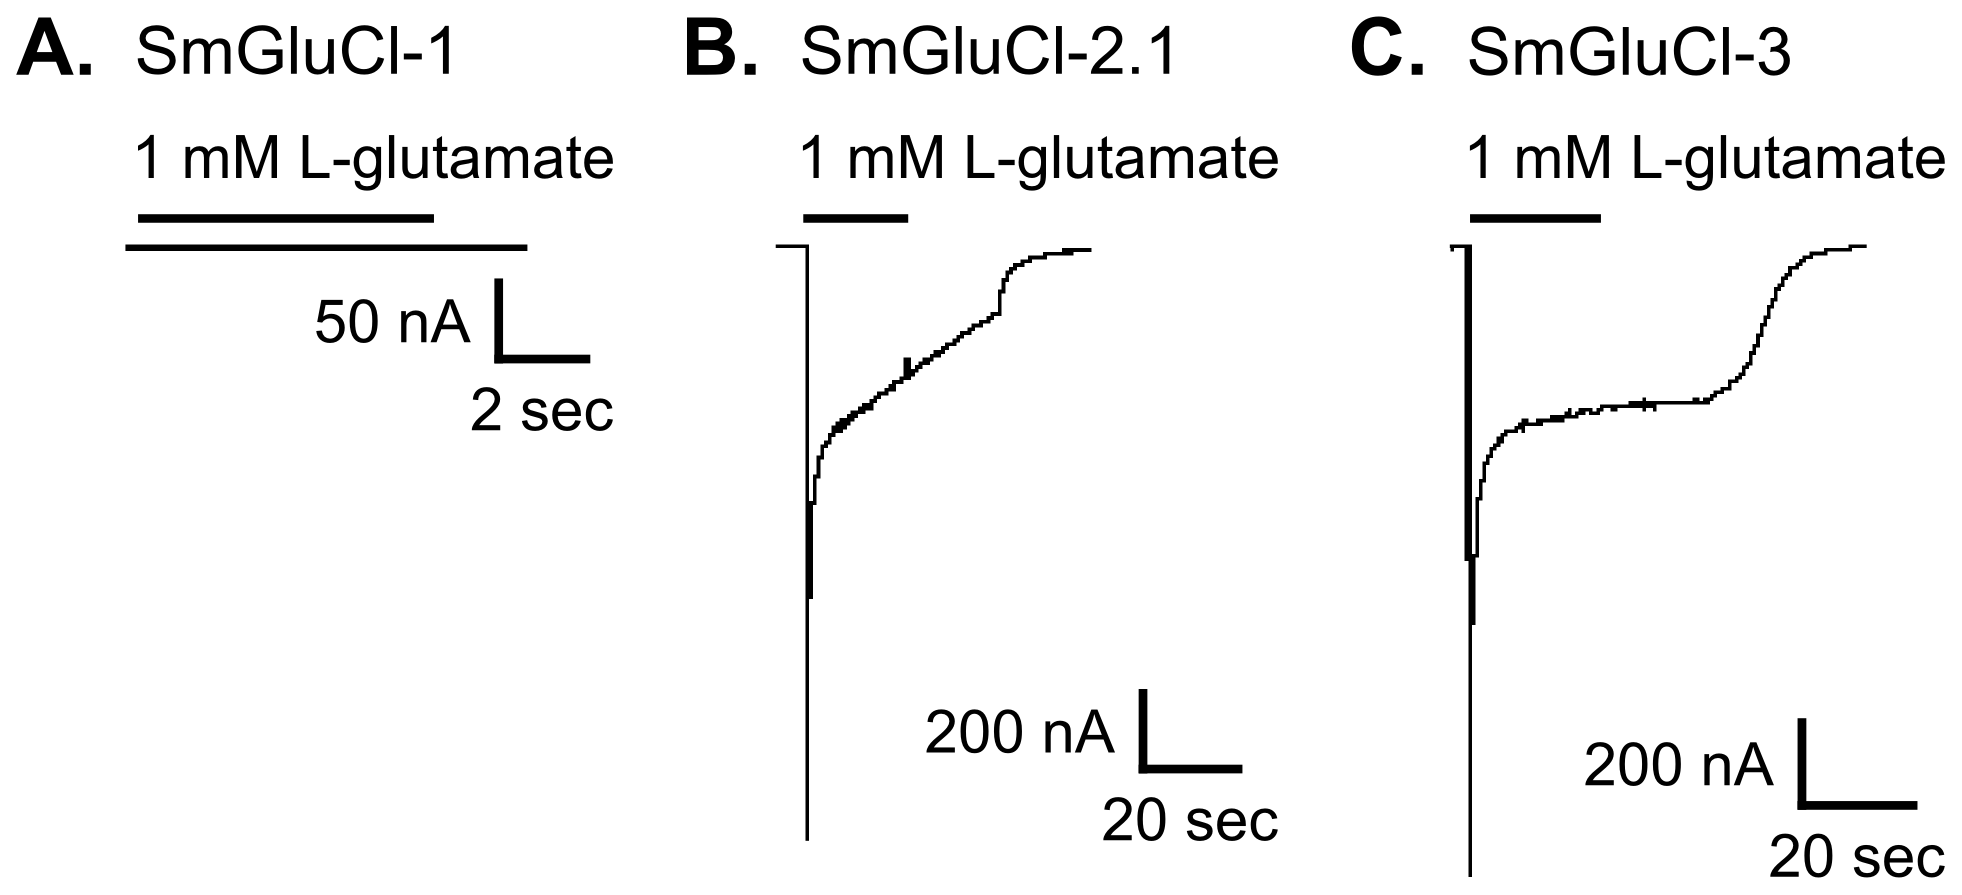 Functional expression of SmGluCl-1, SmGluCl-2, and SmGluCl-3 homo-oligomers in <i>Xenopus</i> oocytes.